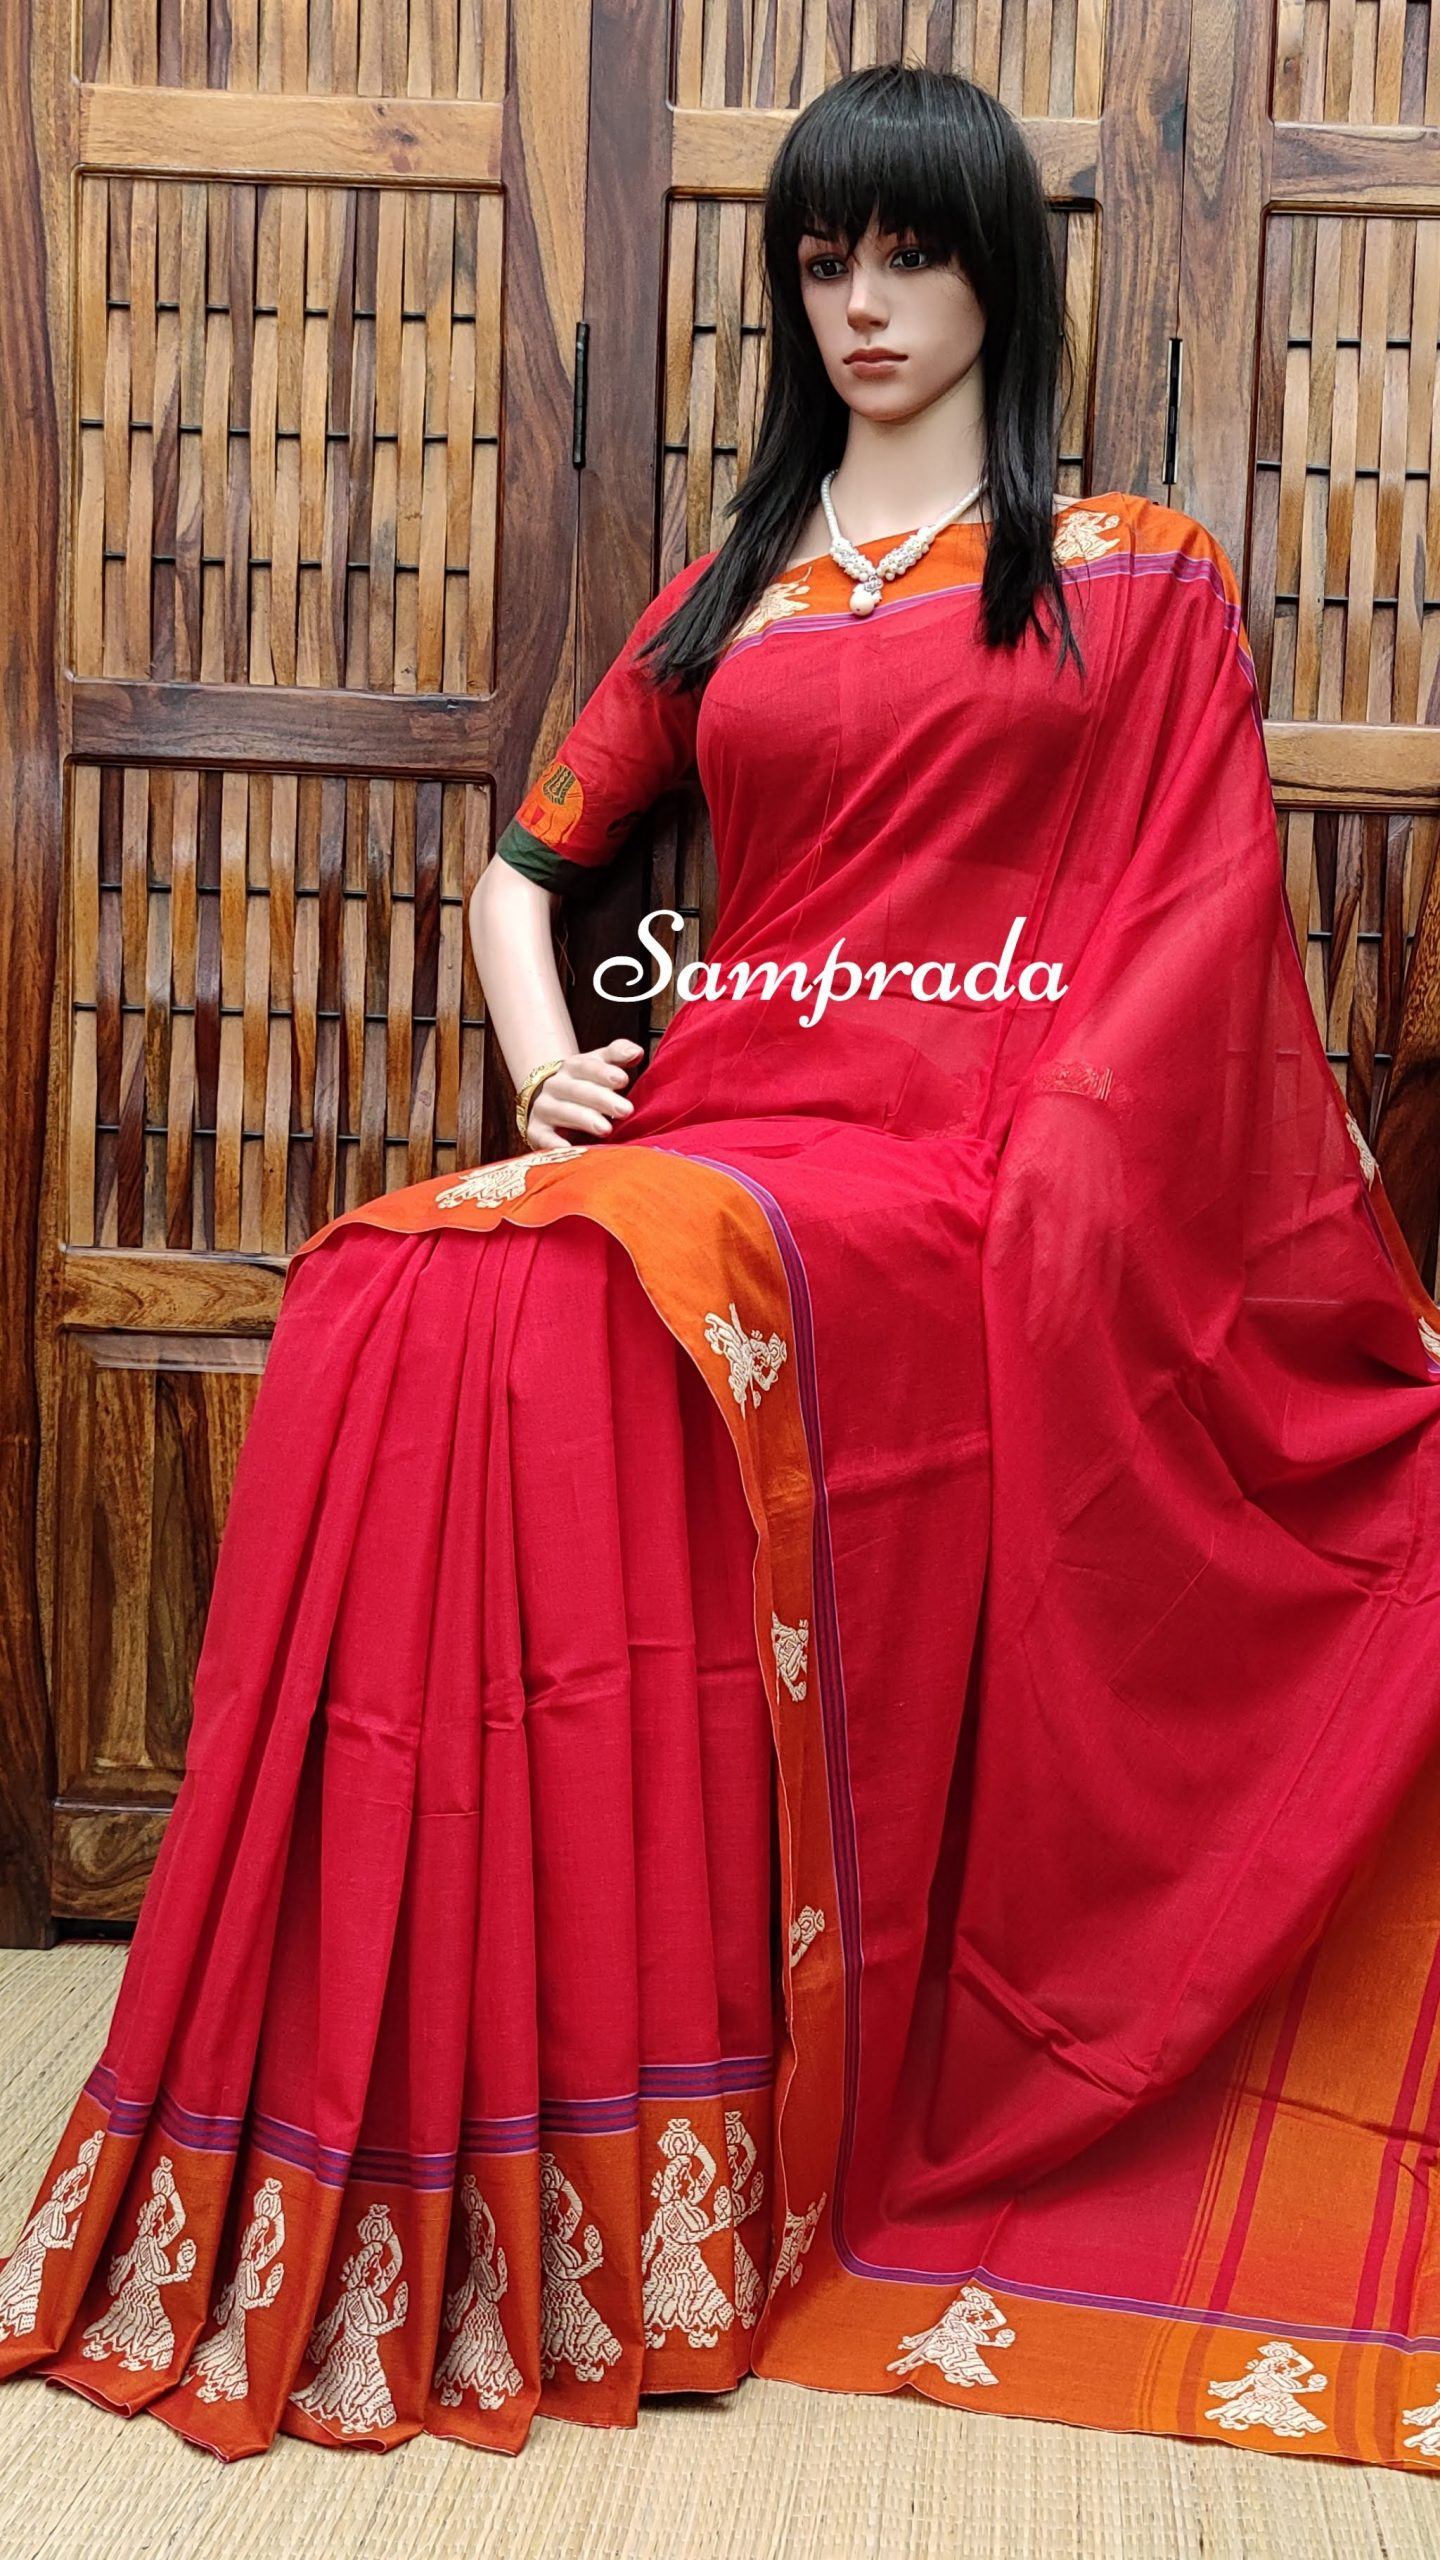 Meghal - Mercerized Pearl Cotton Saree